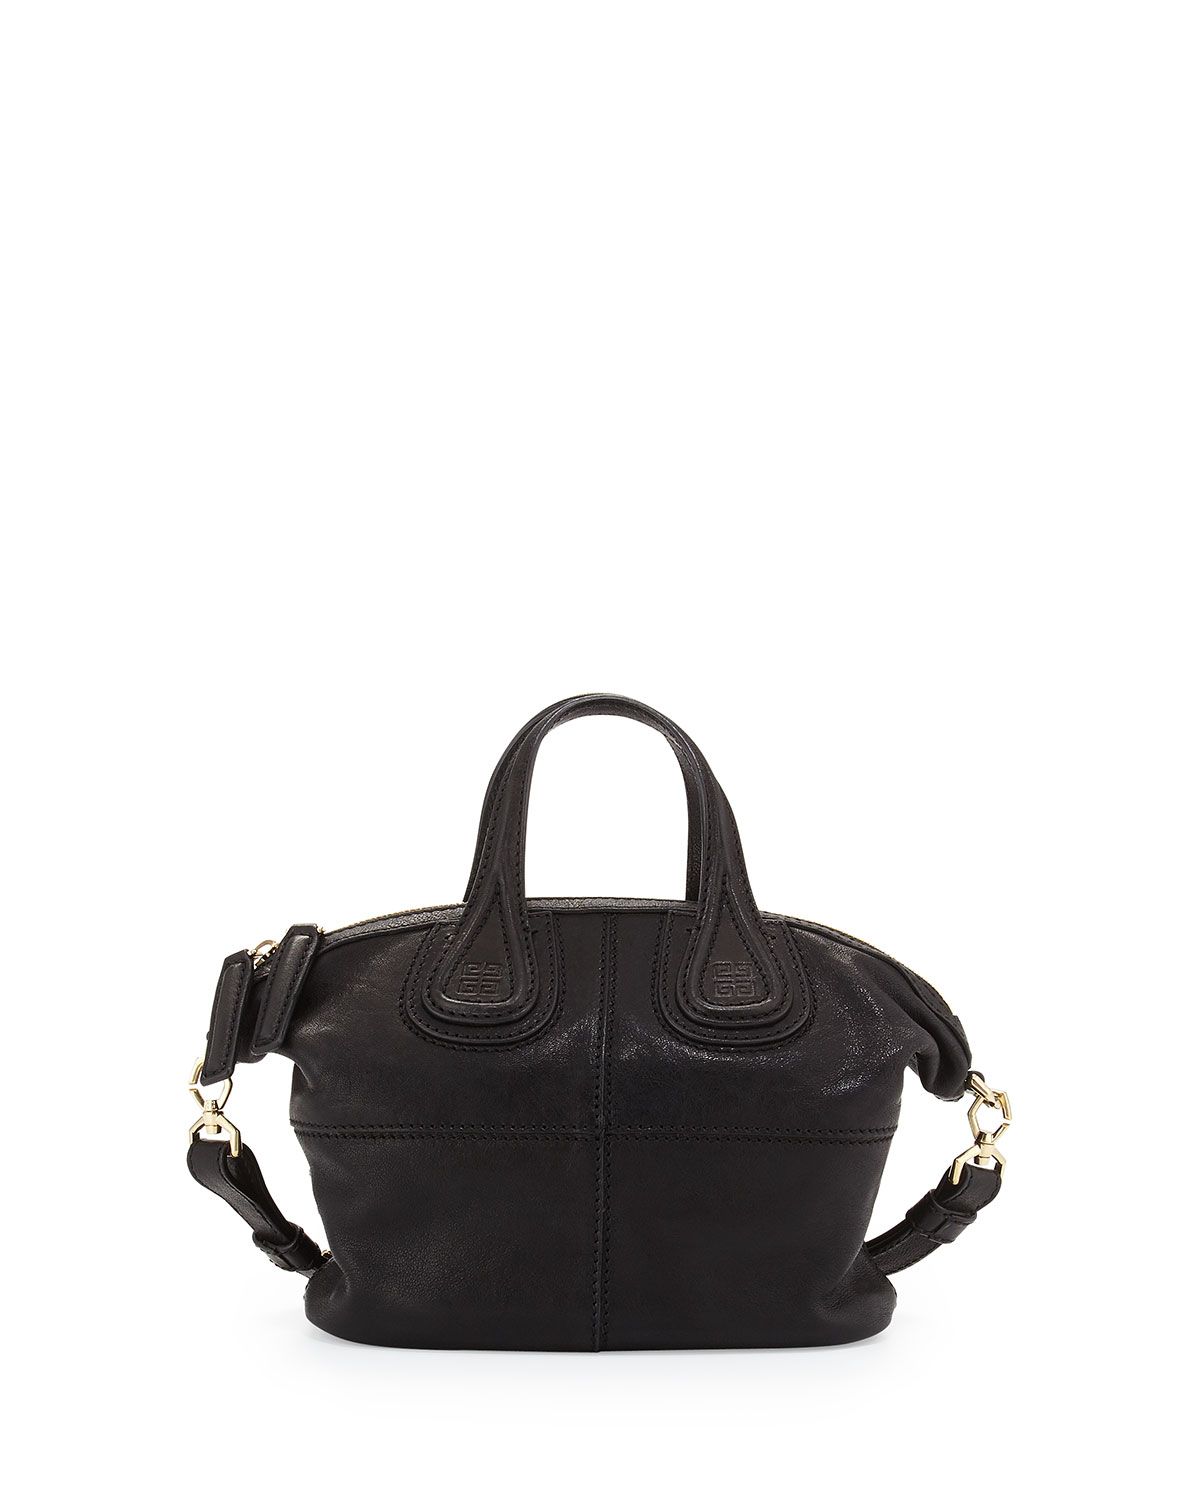 Lyst - Givenchy Nightingale Canvas   Leather Satchel Bag in Black af9fb9dce597e